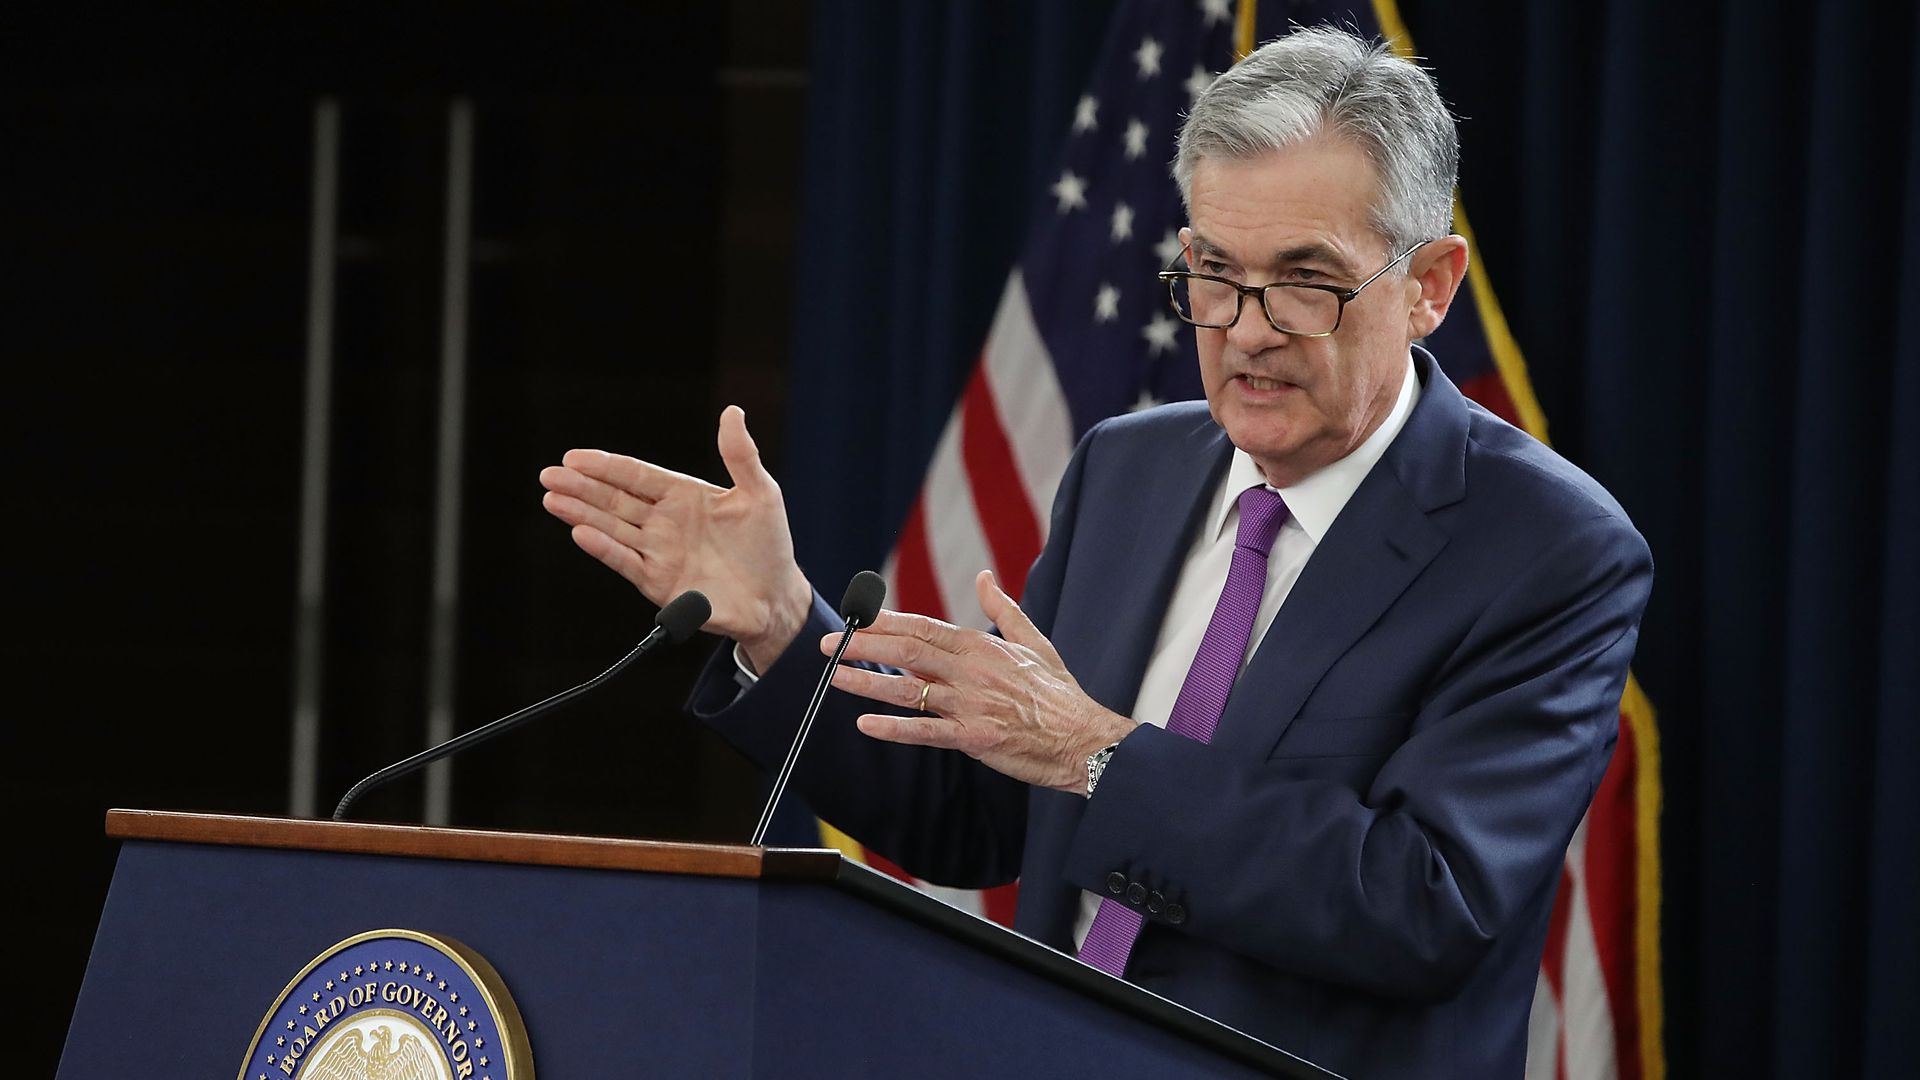 Fed Chair Jerome Powell speaks during a news conference on September 26, 2018.